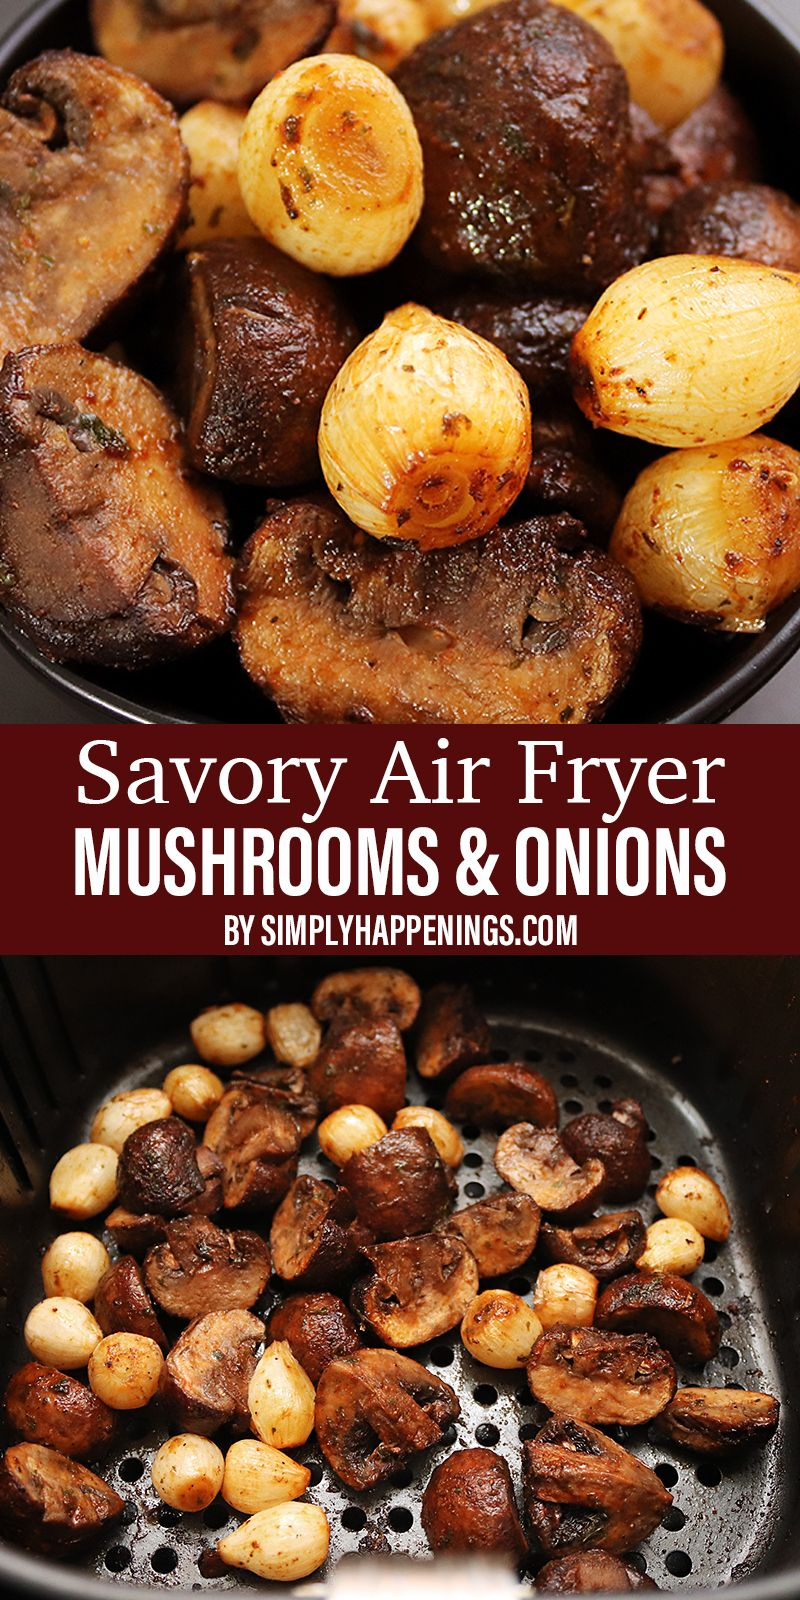 Mushrooms with Spring Onions Airfryer Recipe (With